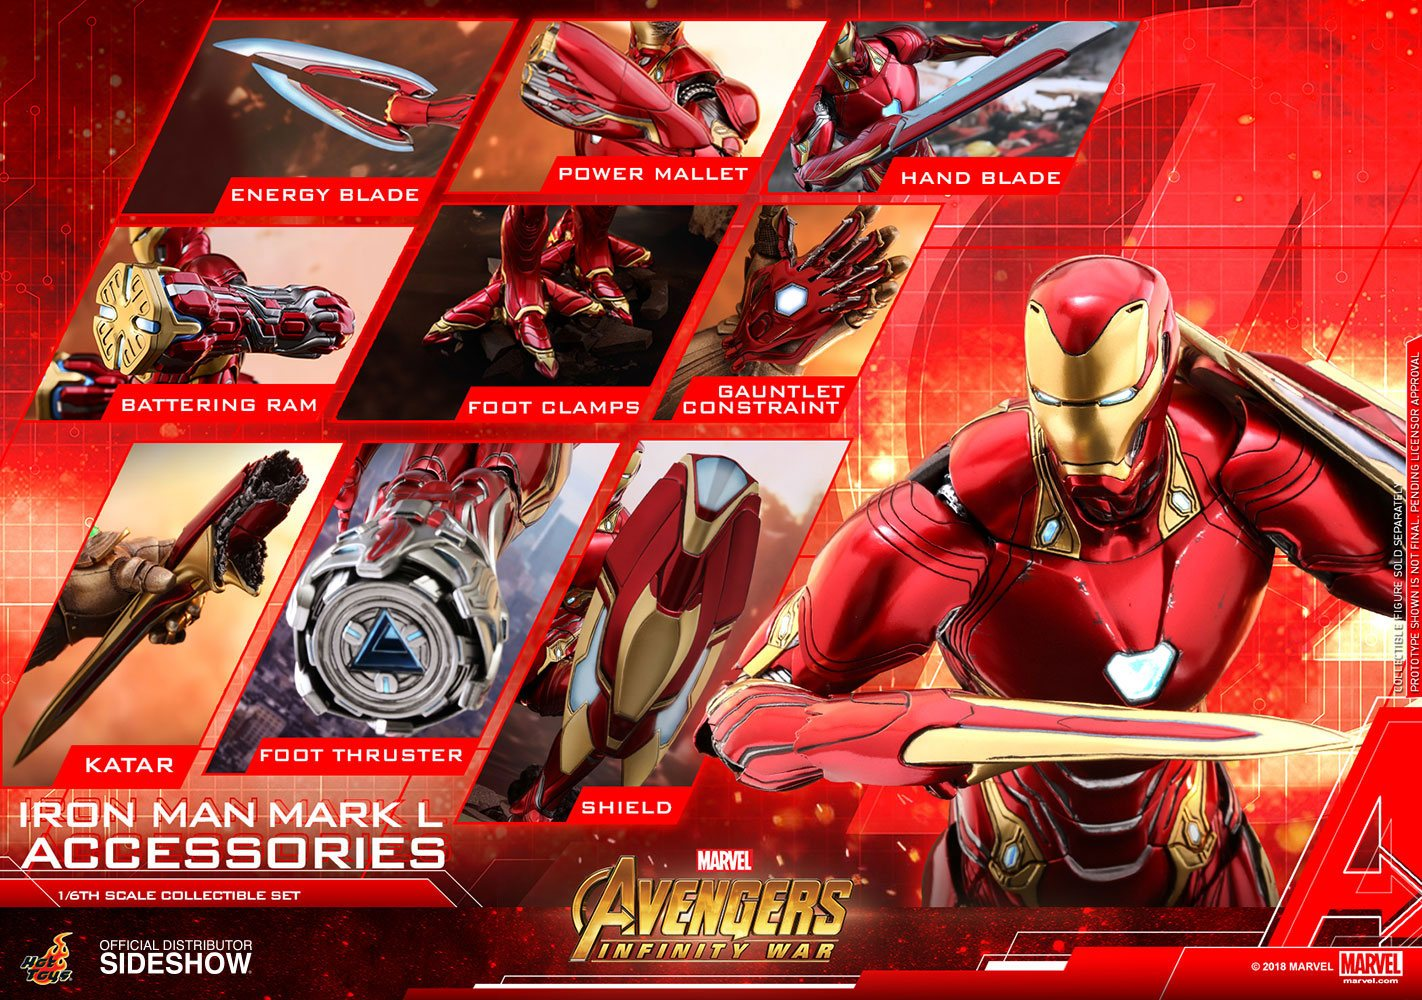 HOT TOYS - MARVEL - AVENGERS Infinity War - Accessories Collection Series -  Iron Man Mark L Accessories